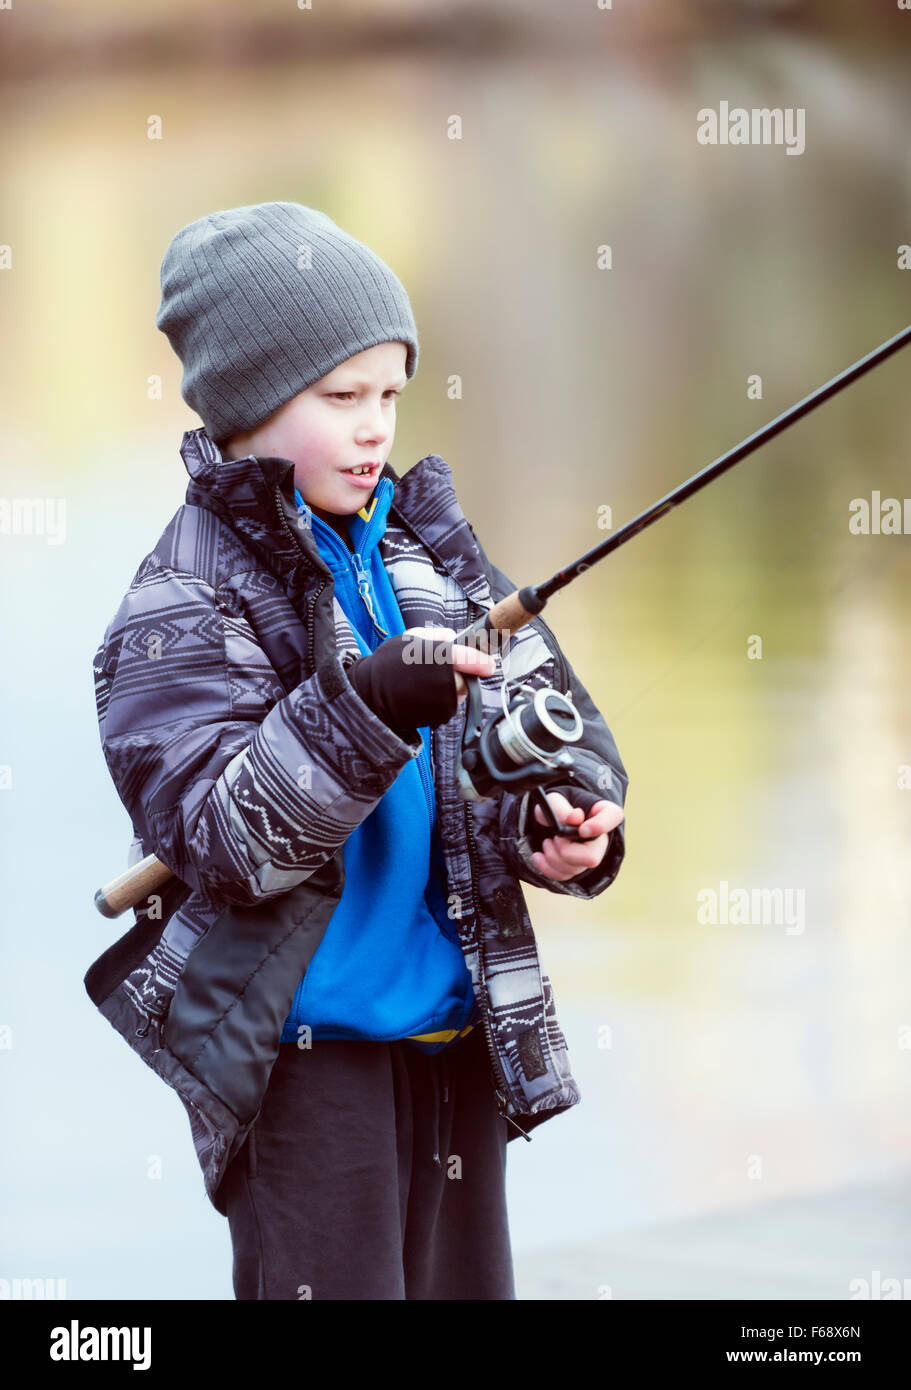 Fishing - Stock Image